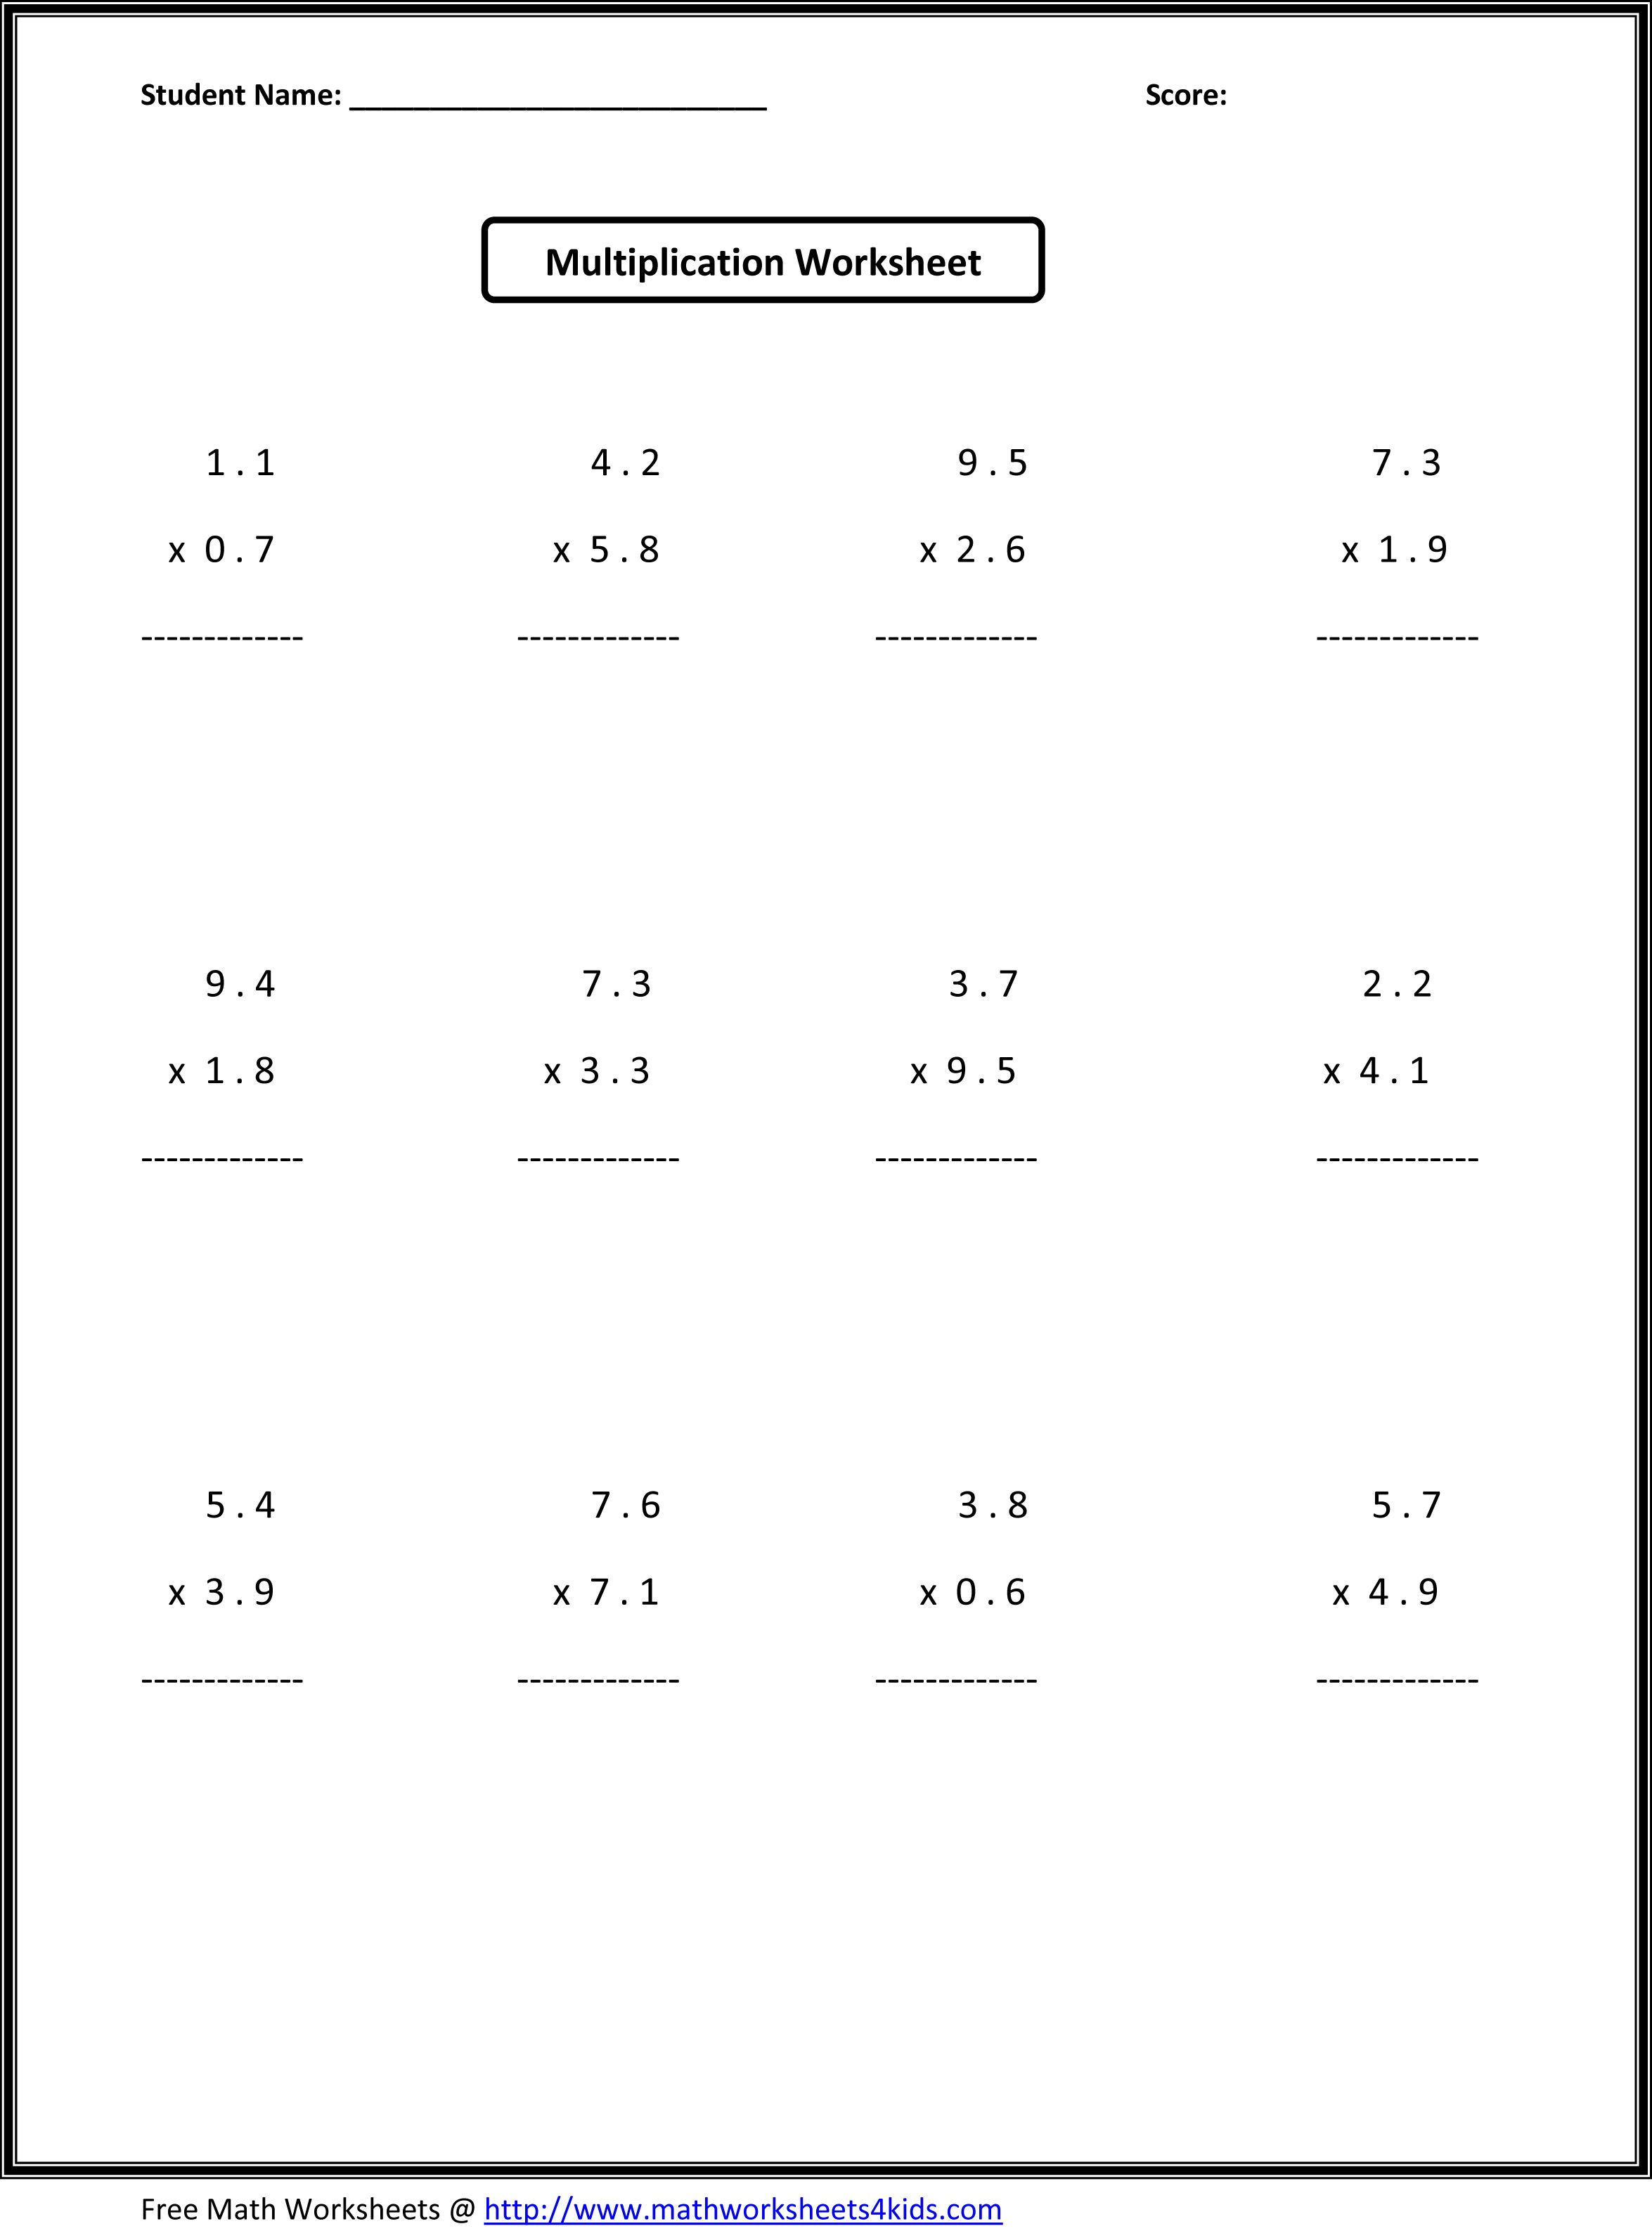 Uncategorized Input Output Math Worksheets math worksheets for grade 8 7th standard met working with value absolute based on basic math